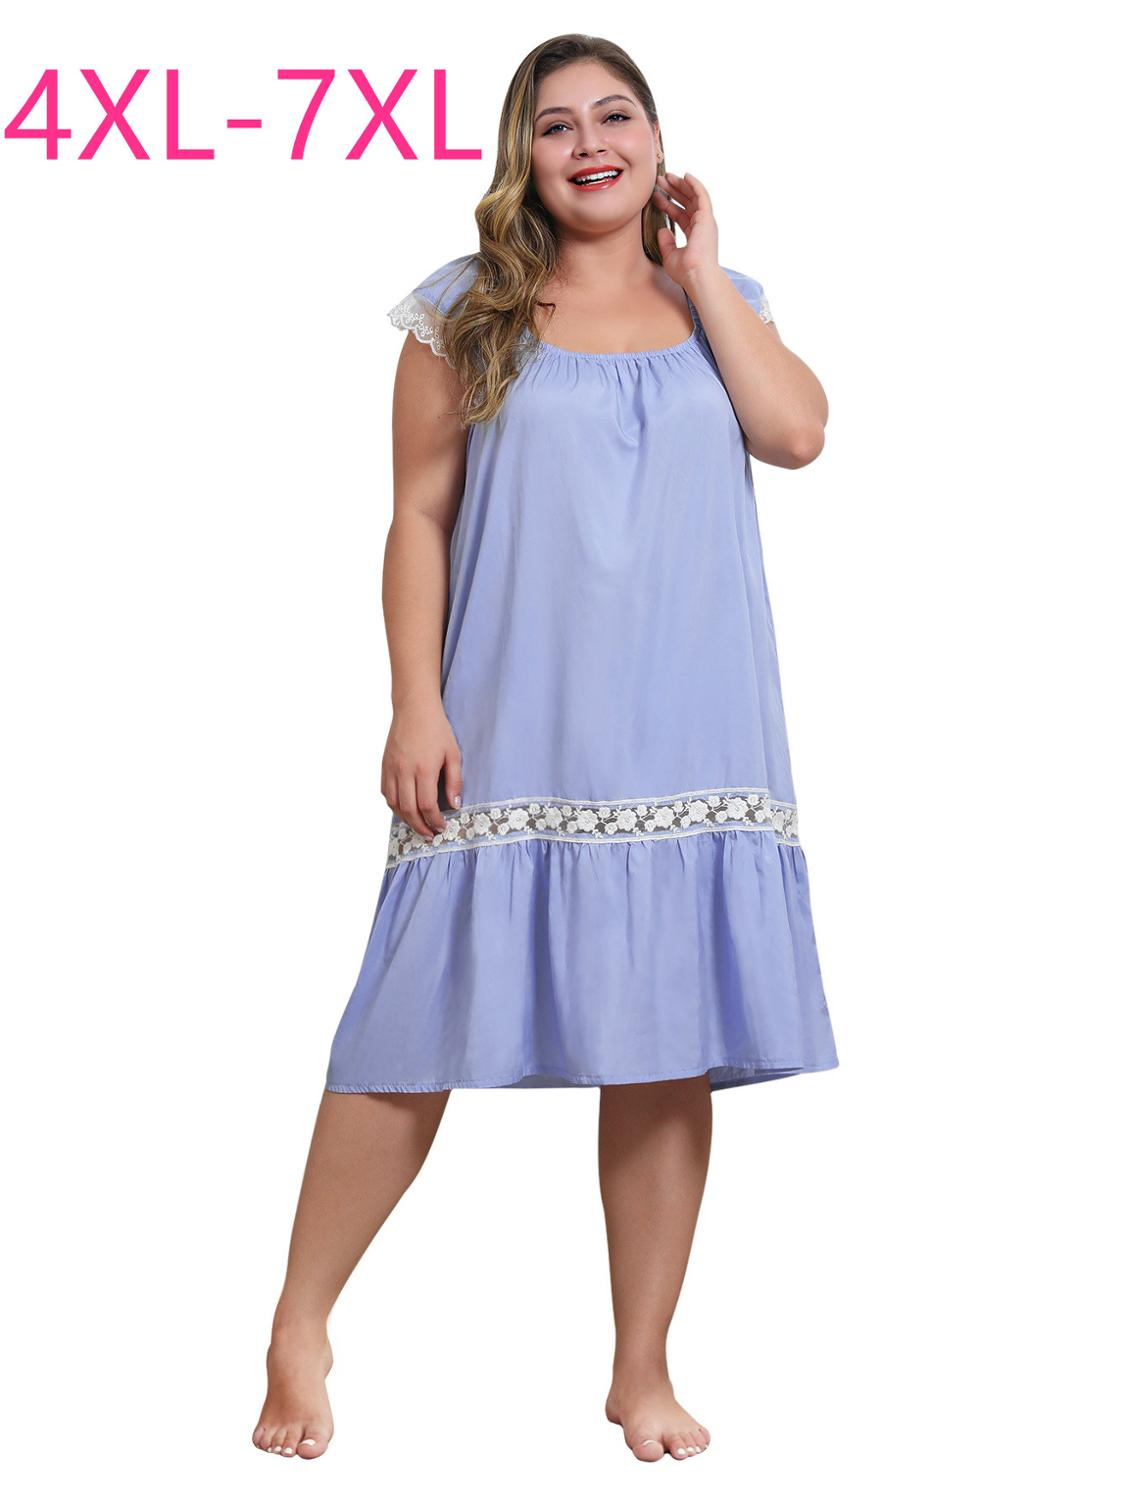 New 2020 summer <font><b>plus</b></font> <font><b>size</b></font> long dress for <font><b>women</b></font> loose casual cute sleeveless blue ruffle straight dress with lace 4XL 5XL 6XL <font><b>7XL</b></font> image